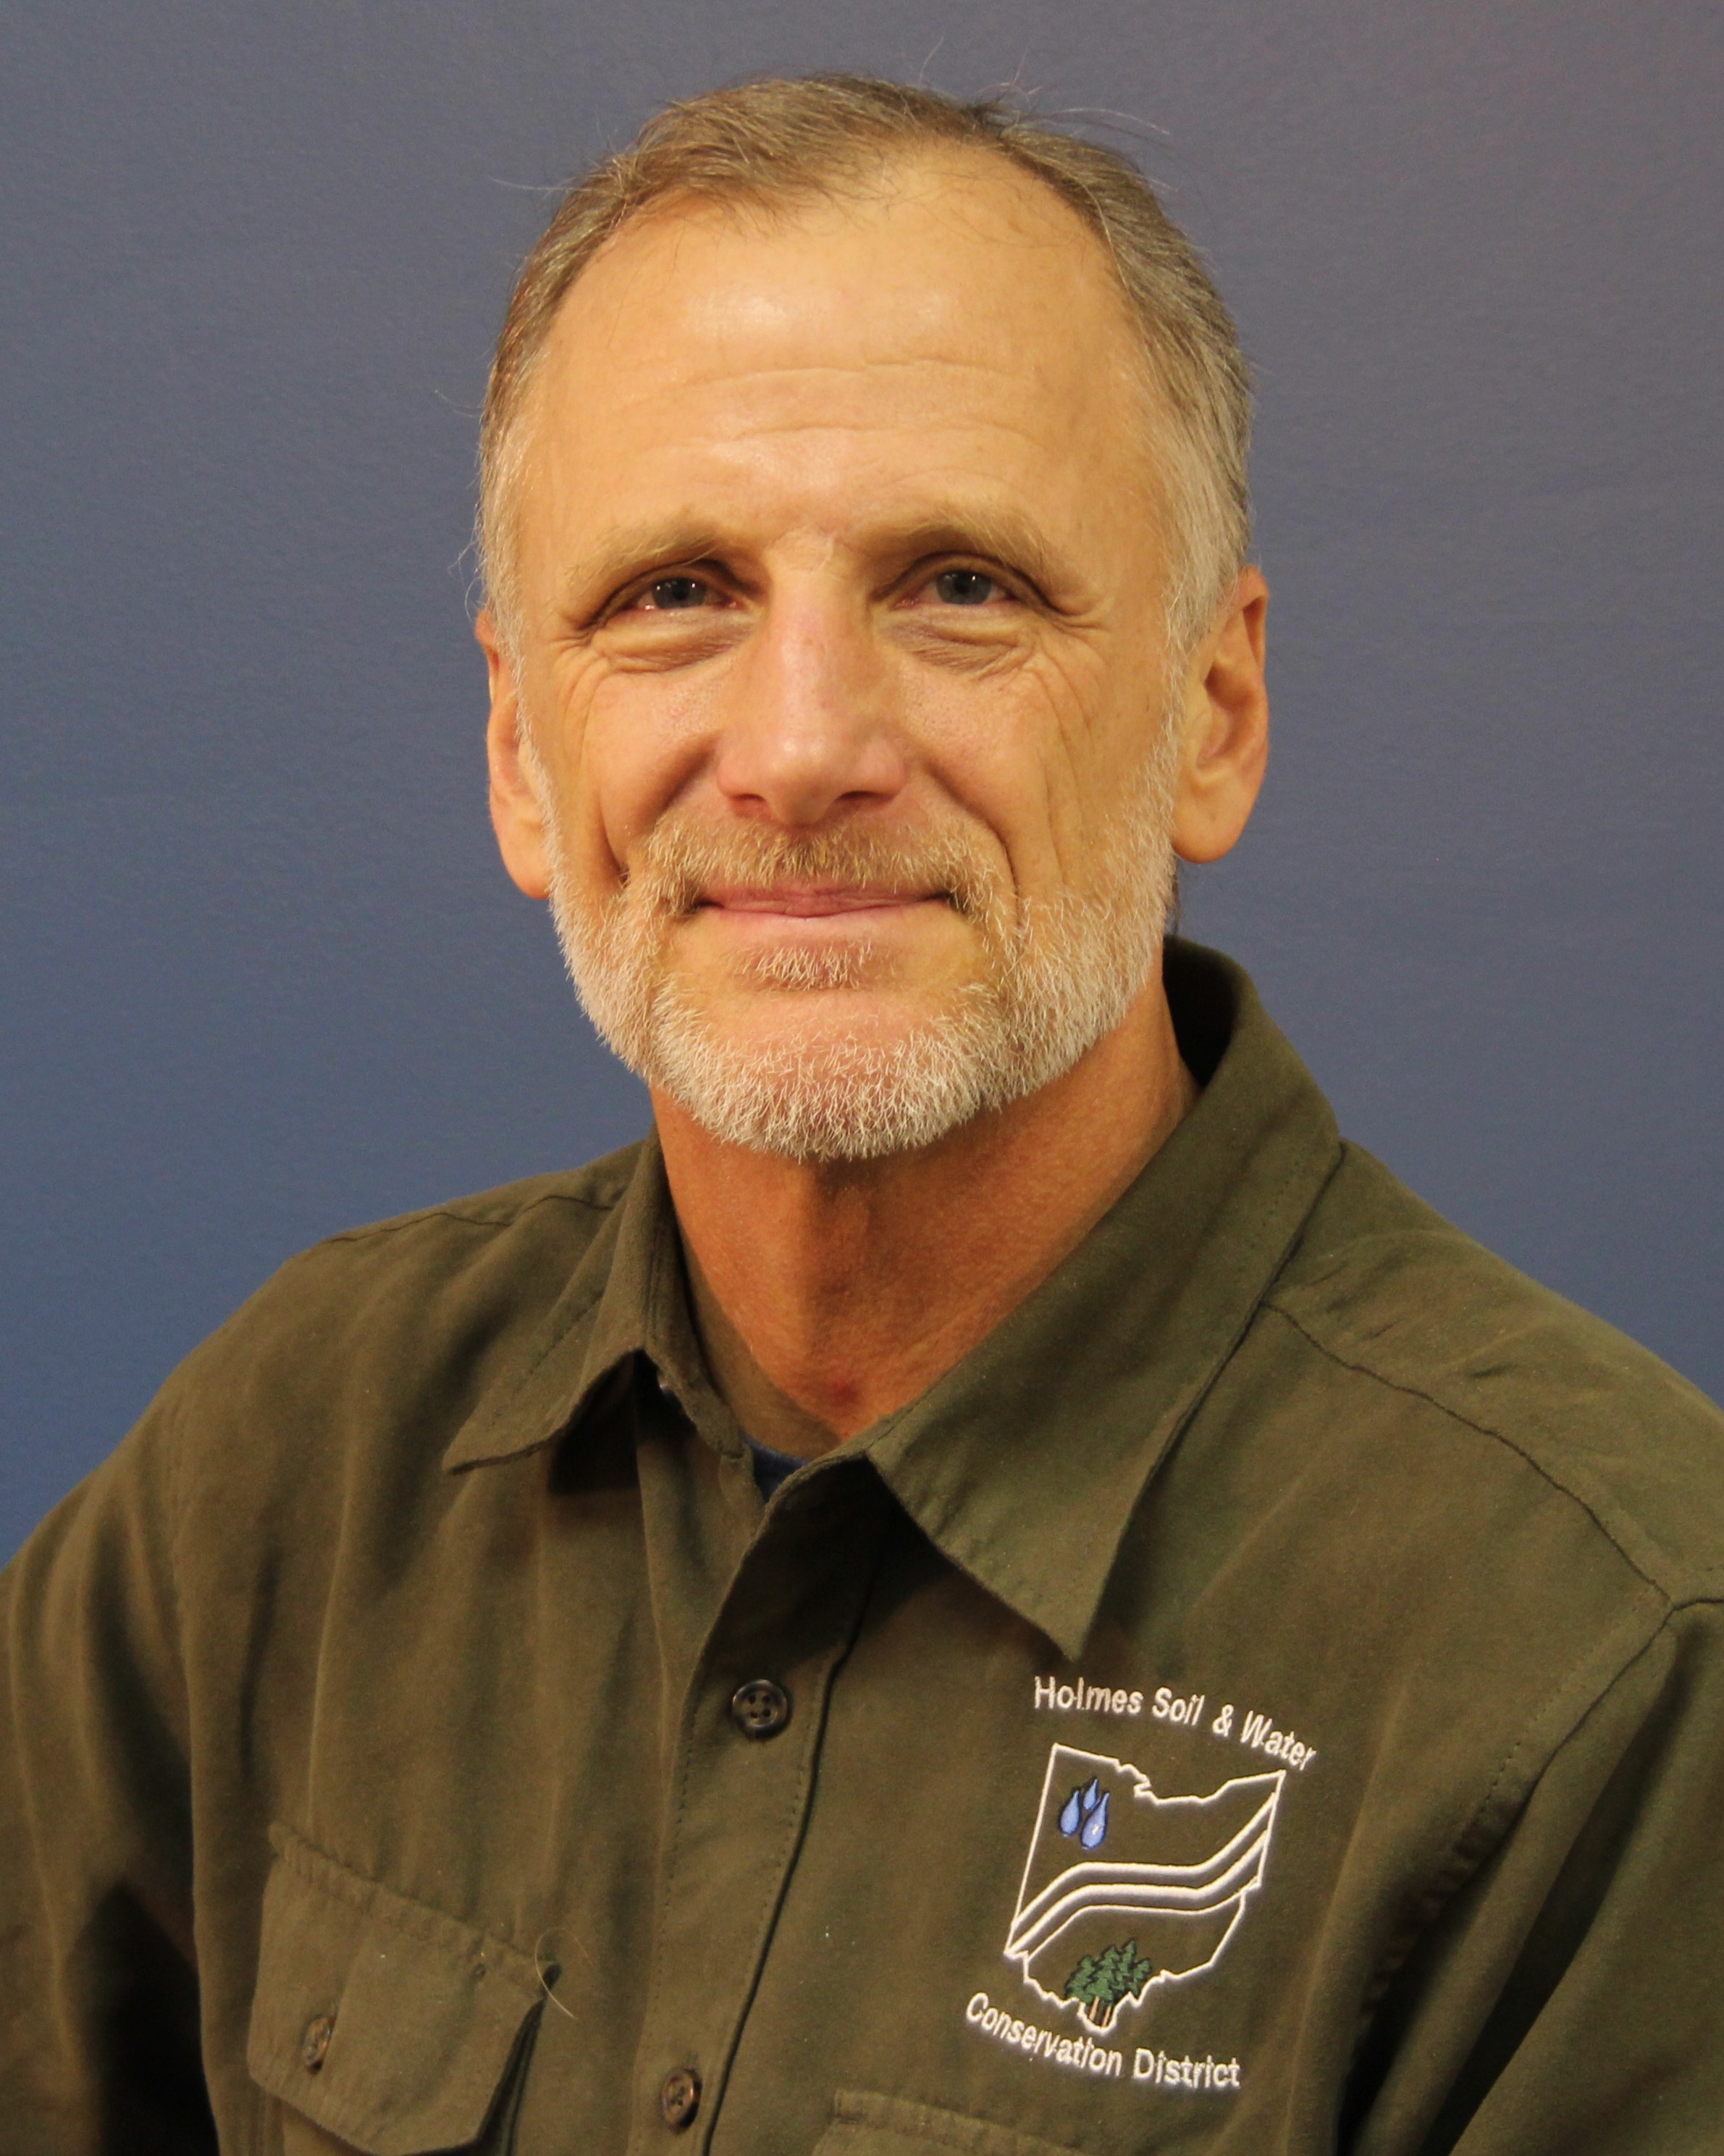 John Lorson, District Technician - John came to Holmes SWCD after leaving a career in higher education quite literally for greener pastures. He holds a BS in Biology from The University of Akron where he later worked for ten years—most recently as coordinator of the The University of Akron Millersburg Campus. Prior to that he spent 15 years as an engineering technician with the City of Orrville, dealing with storm water, infrastructure and planning issues. John can assist with conservation planning for your farm, rural property or woodlot. He also deals with storm water management issues, and investigates pollution complaints. Reach John with your conservation concerns at 330-674-2811 or email jlorson@co.holmes.oh.us